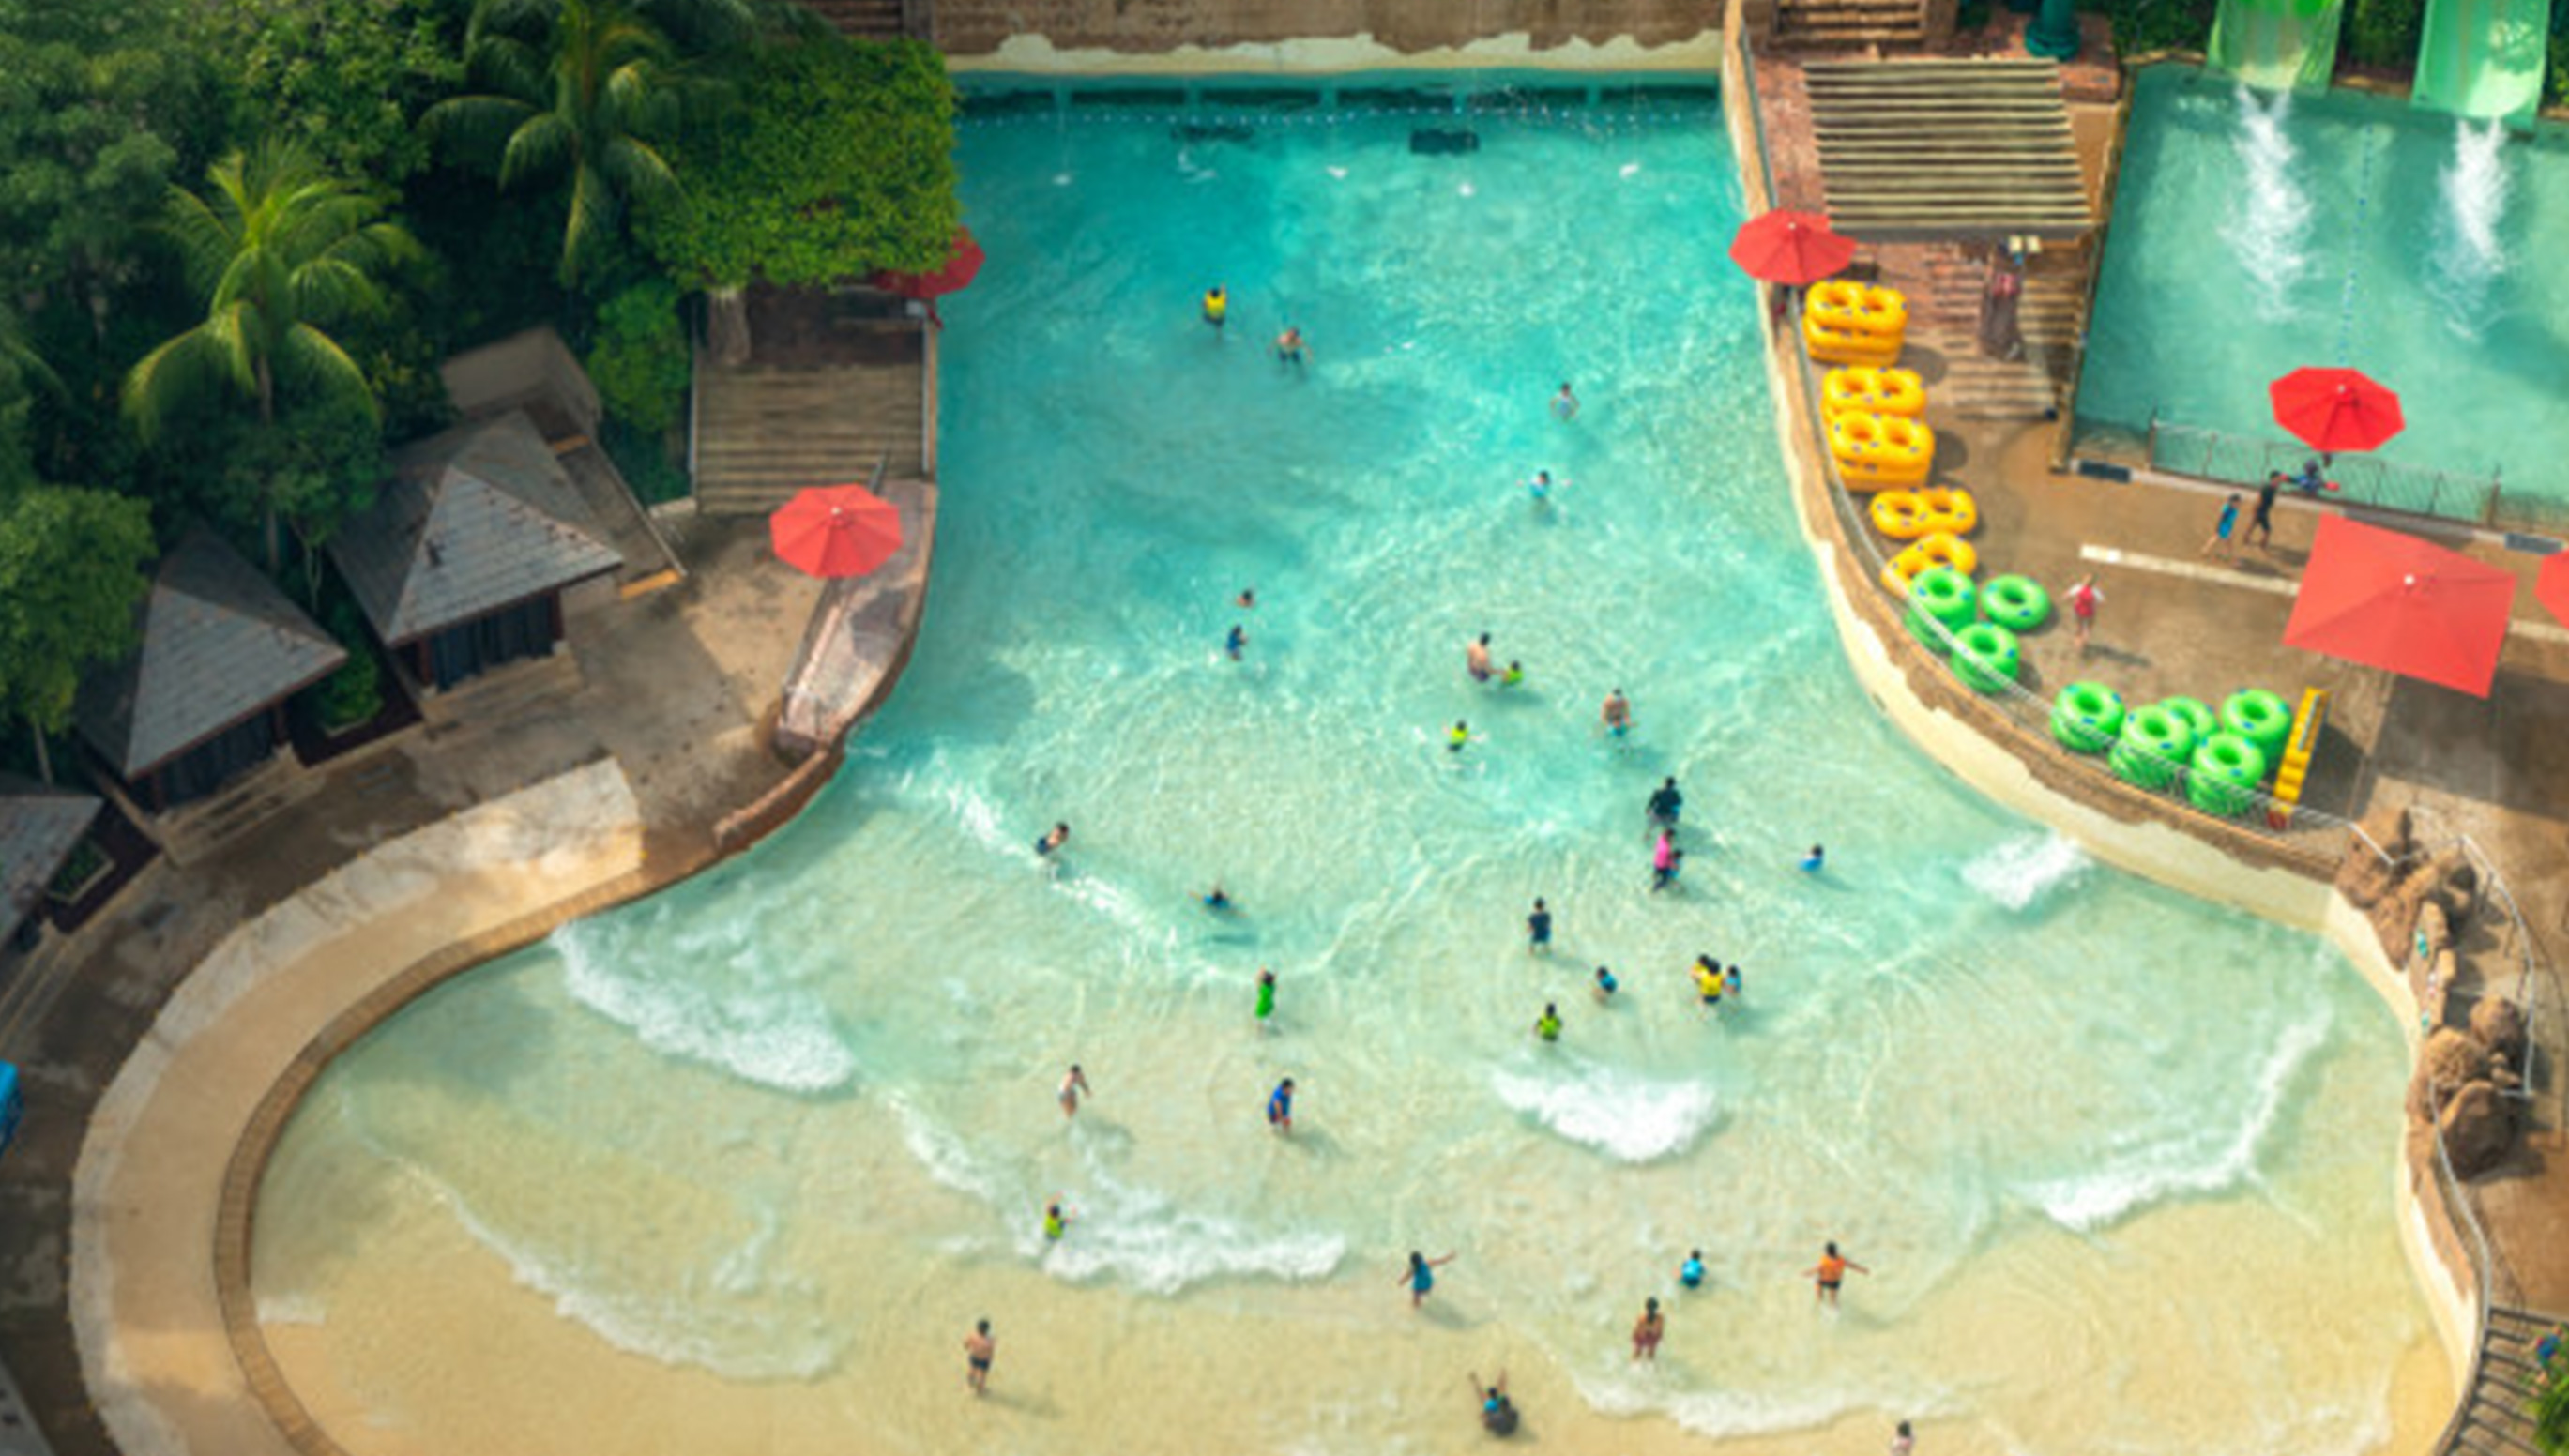 HBest Summer Holiday Activities with Kids in Singapore